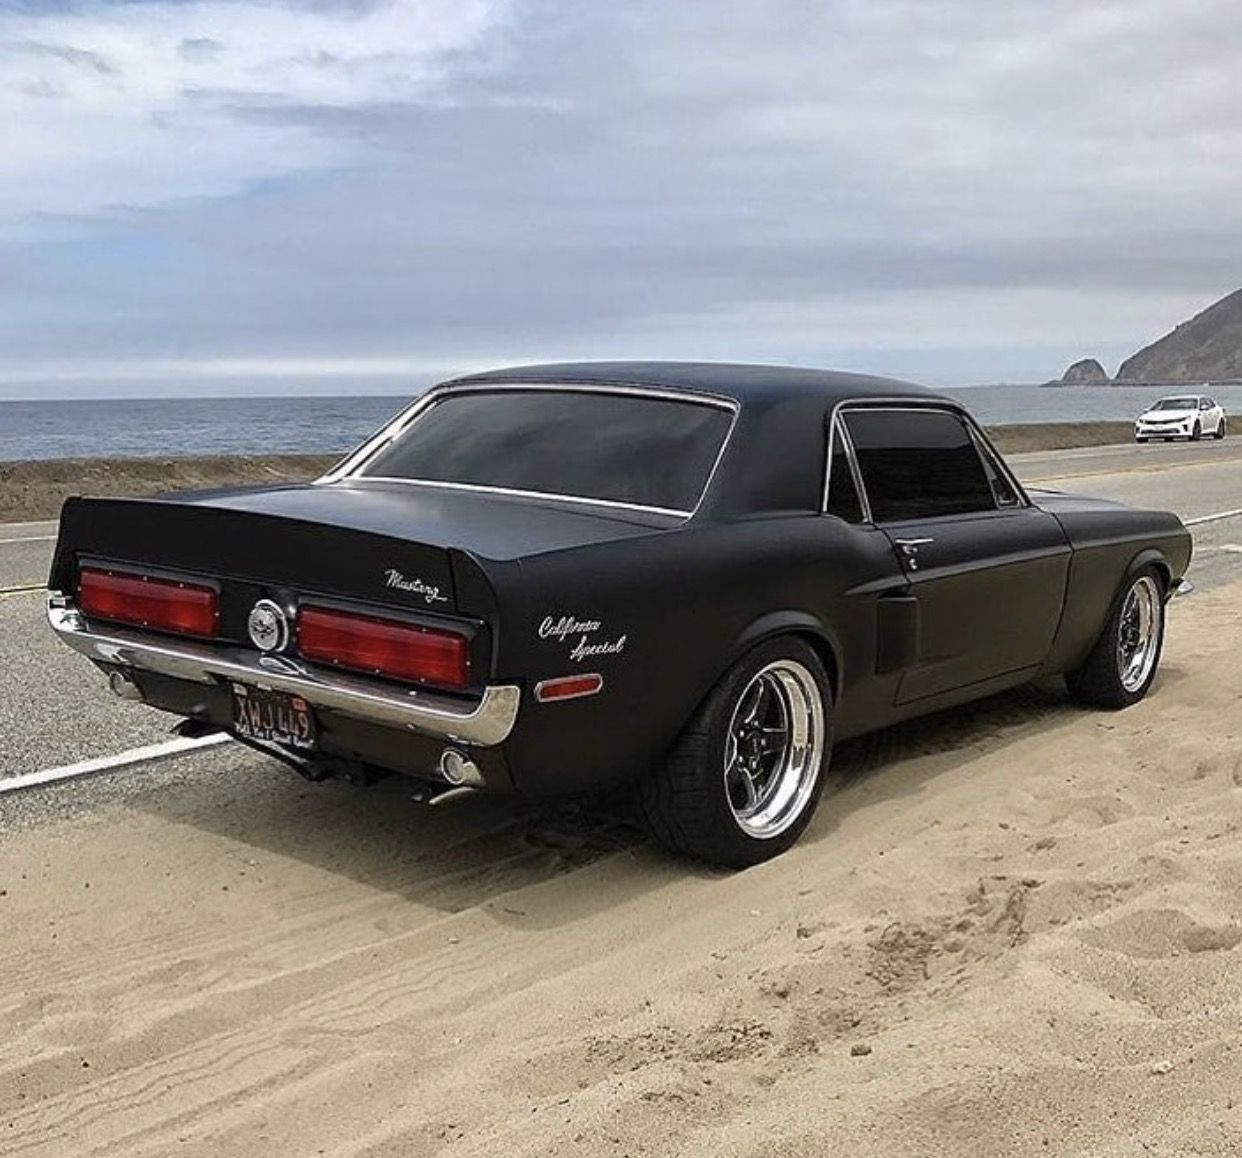 California special ford mustang 1968 ford mustang classic vintage mustang ford mustang shelby